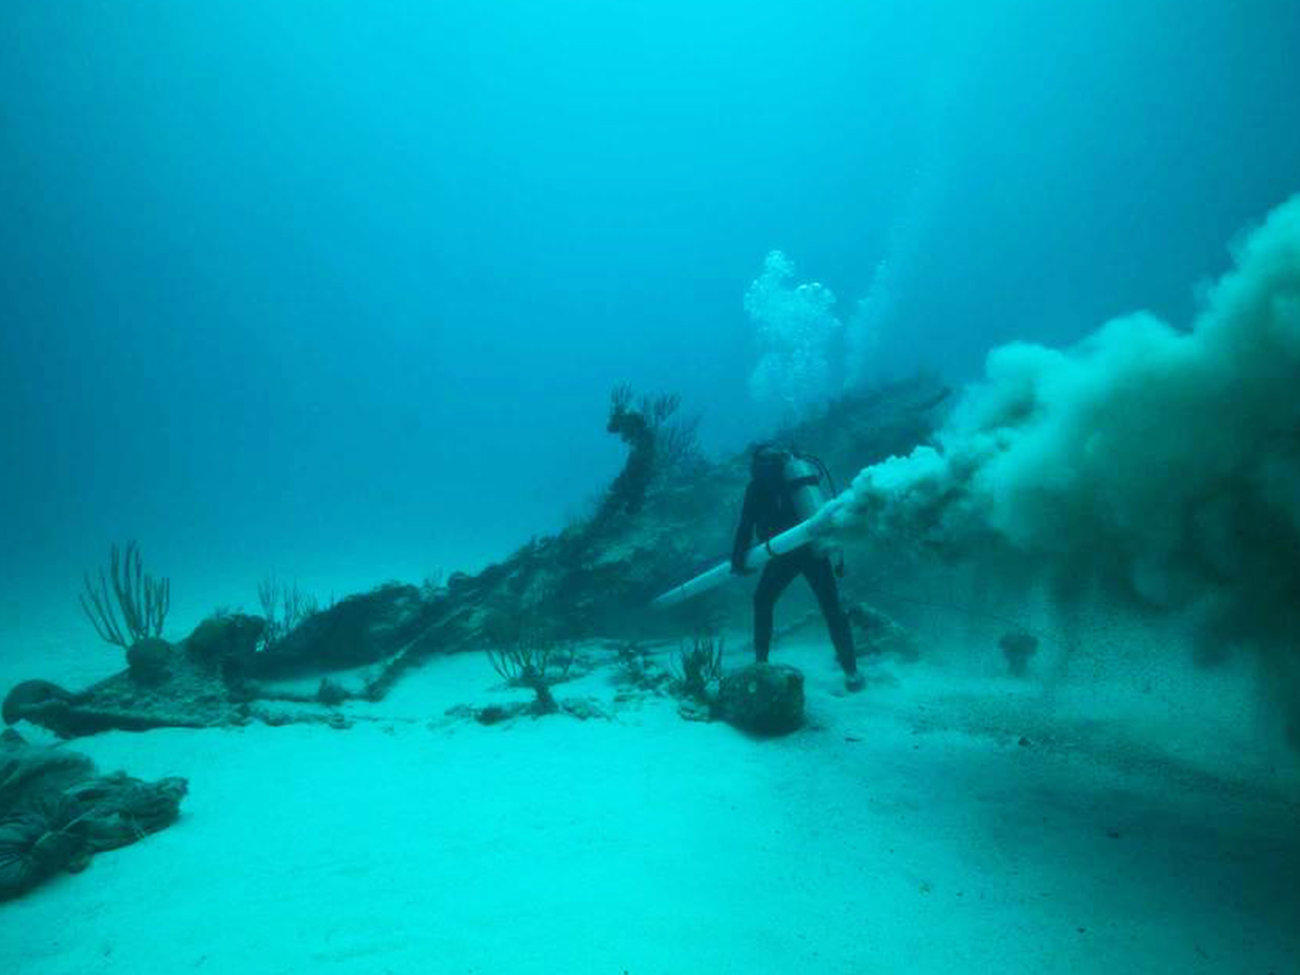 Dive the Marie Celeste Shipwreck in Bermuda